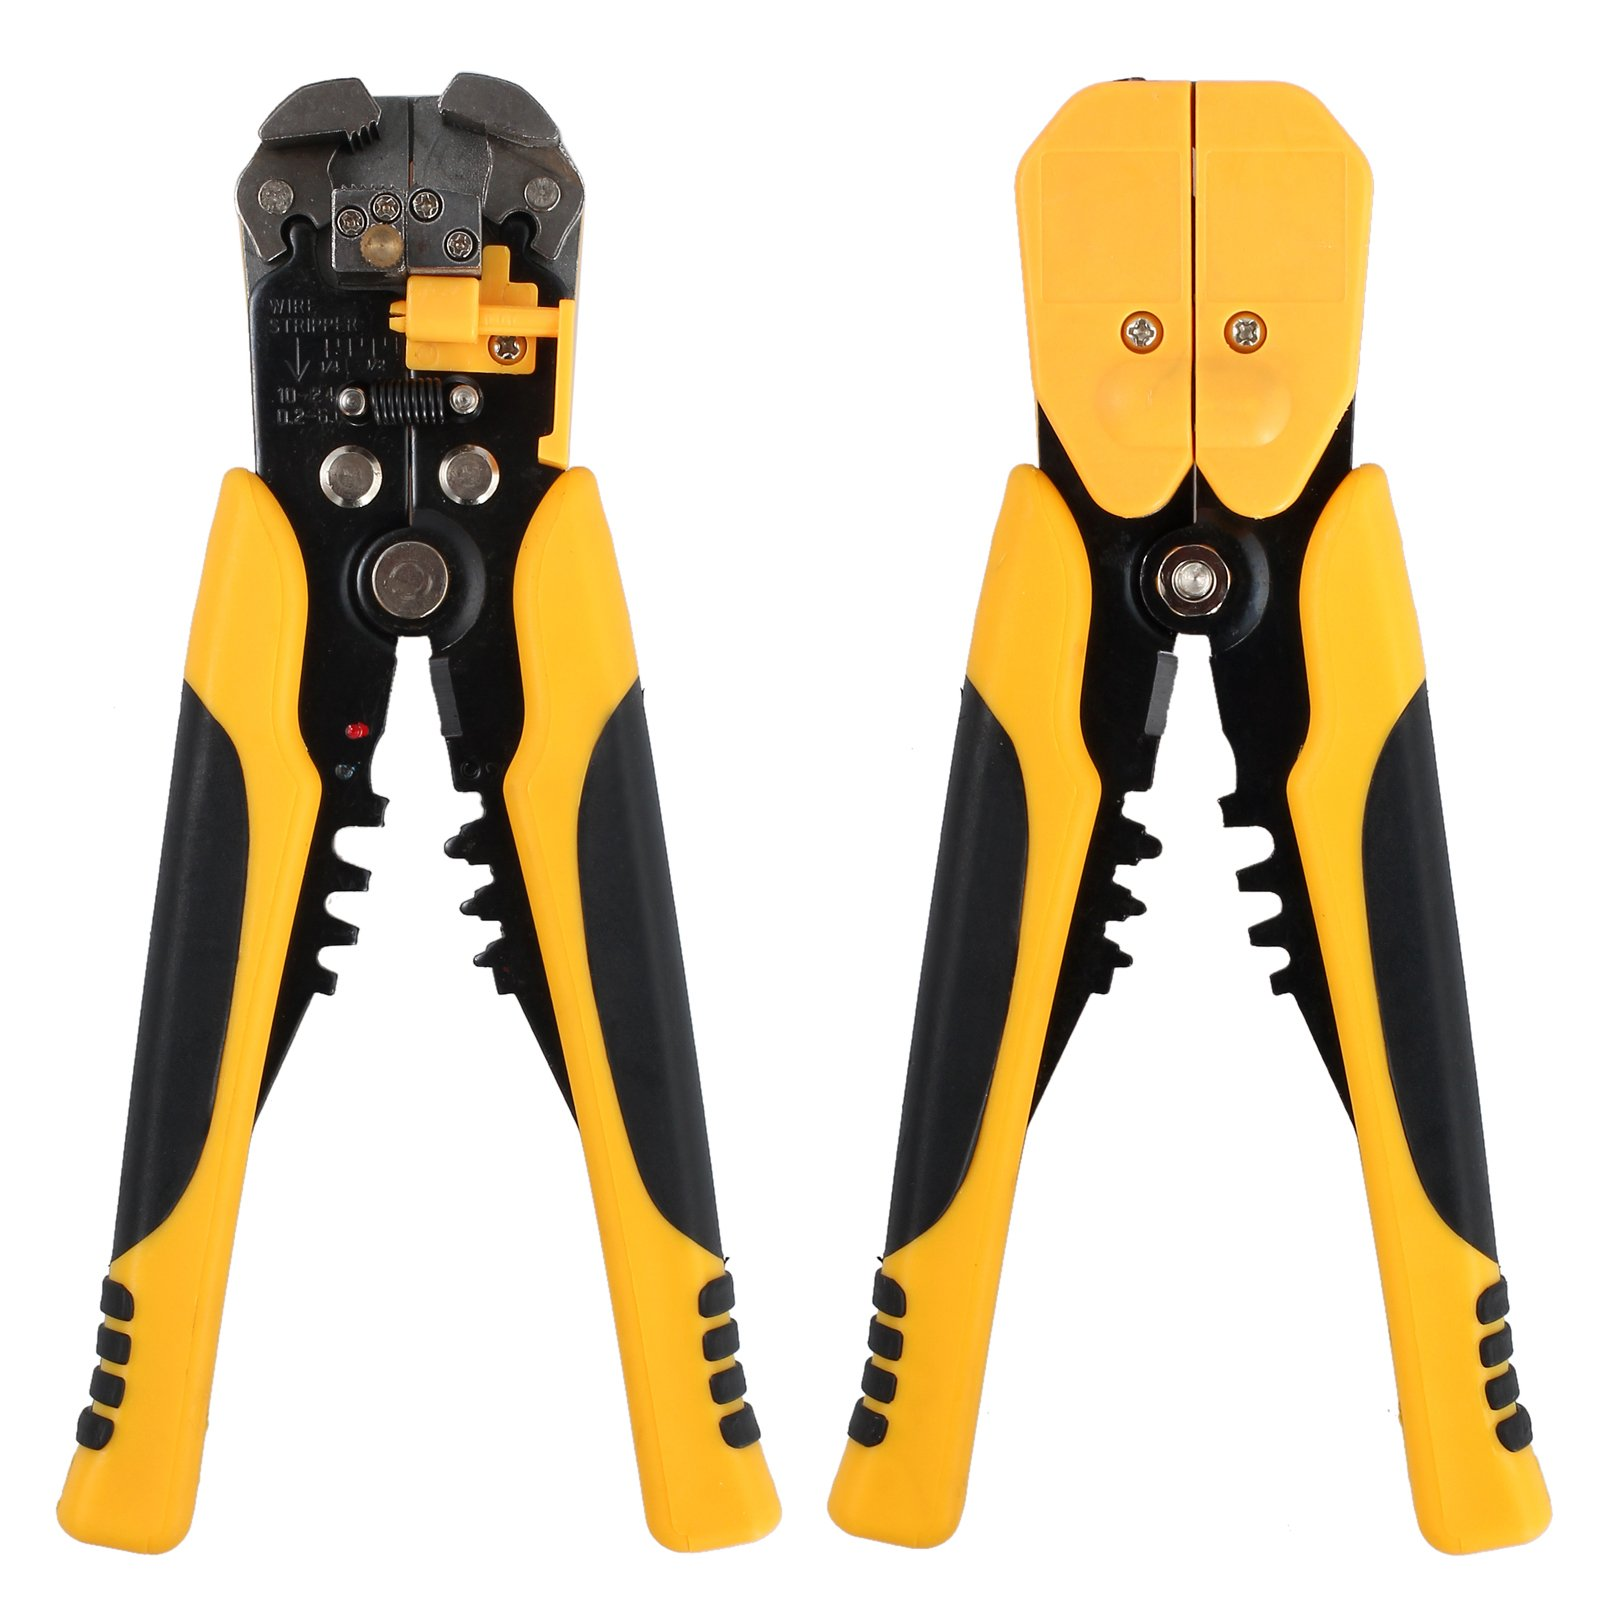 Proxima Direct Cable Crimper Wire Stripping Plier Tool Set Automatic Wire Stripper Crimper Cutter Cable Stripping Cutting Crimping Multifunctional Pliers 0.2-6 mm ² by Proxima Direct (Image #1)